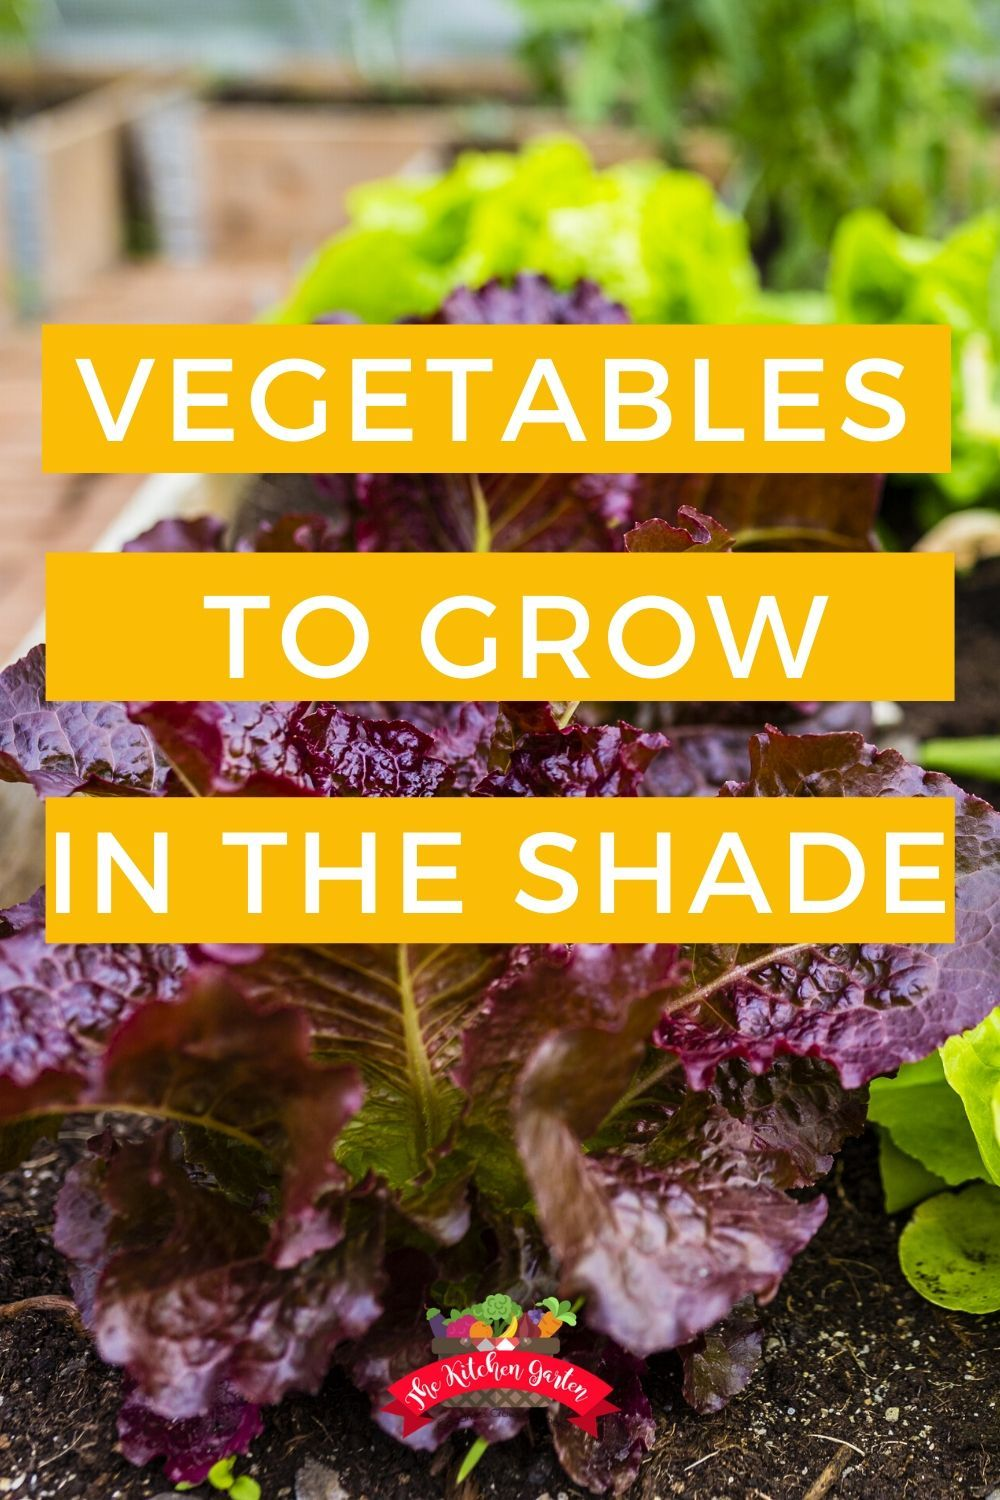 Vegetables that Grow in the Shade Growing vegetables